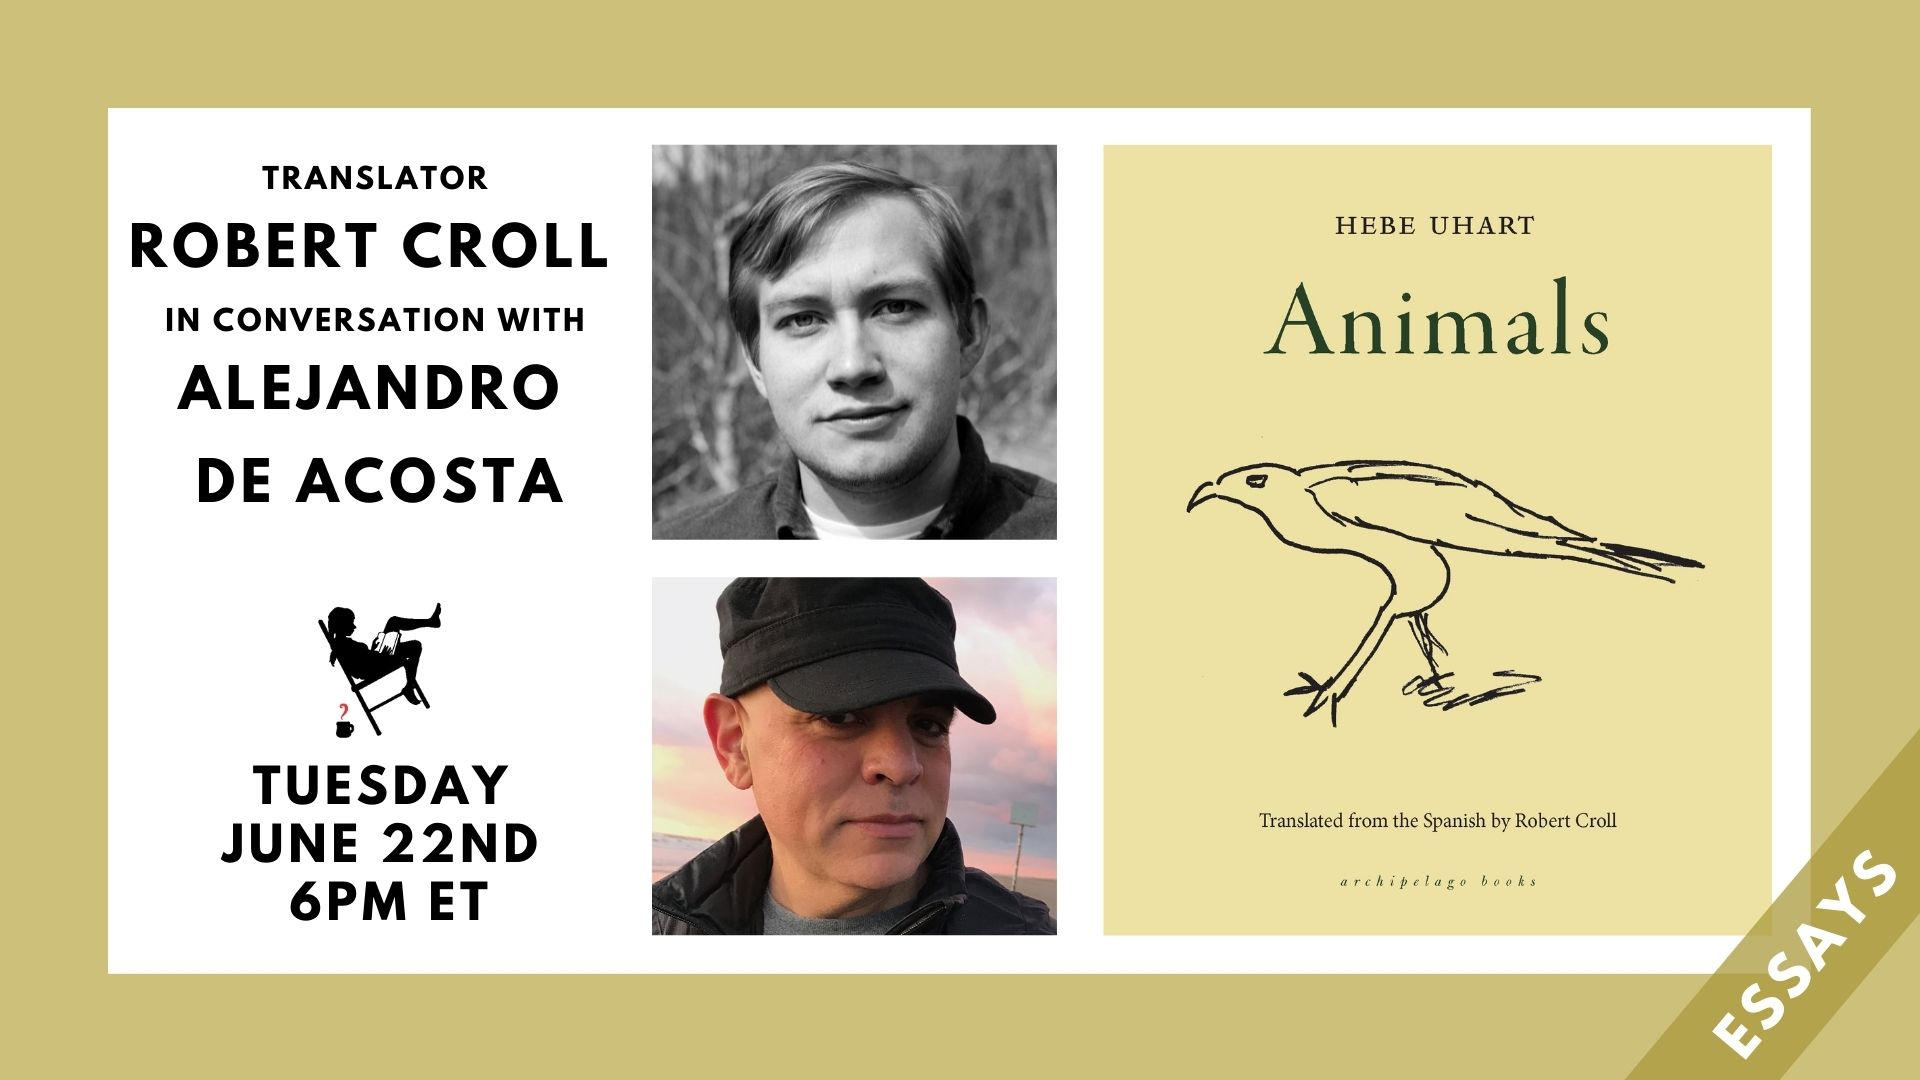 Image is of a tan border with white block containing the ANIMALS book cover, names and headshots for Robert Croll and Alejandro de Acosta, and the event date of 6/22/21 at 6pm. Additional text says Essays.